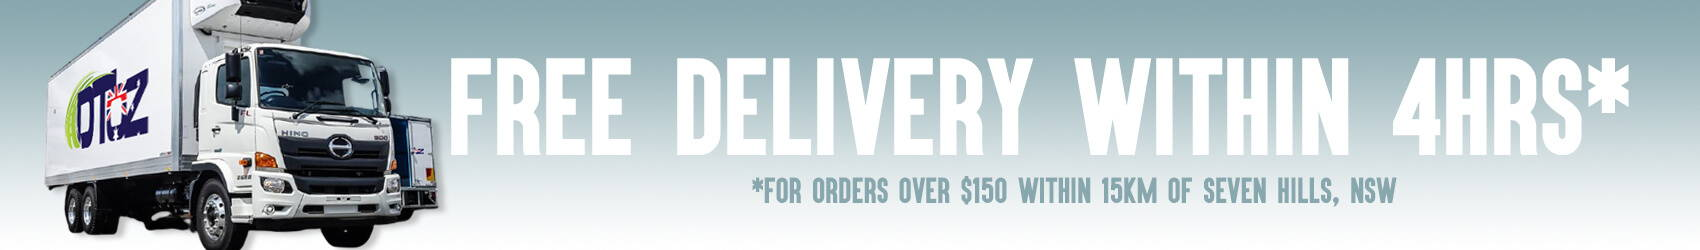 Free delivery within 4hrs for orders over $150 within 150km of Seven Hills, NSW